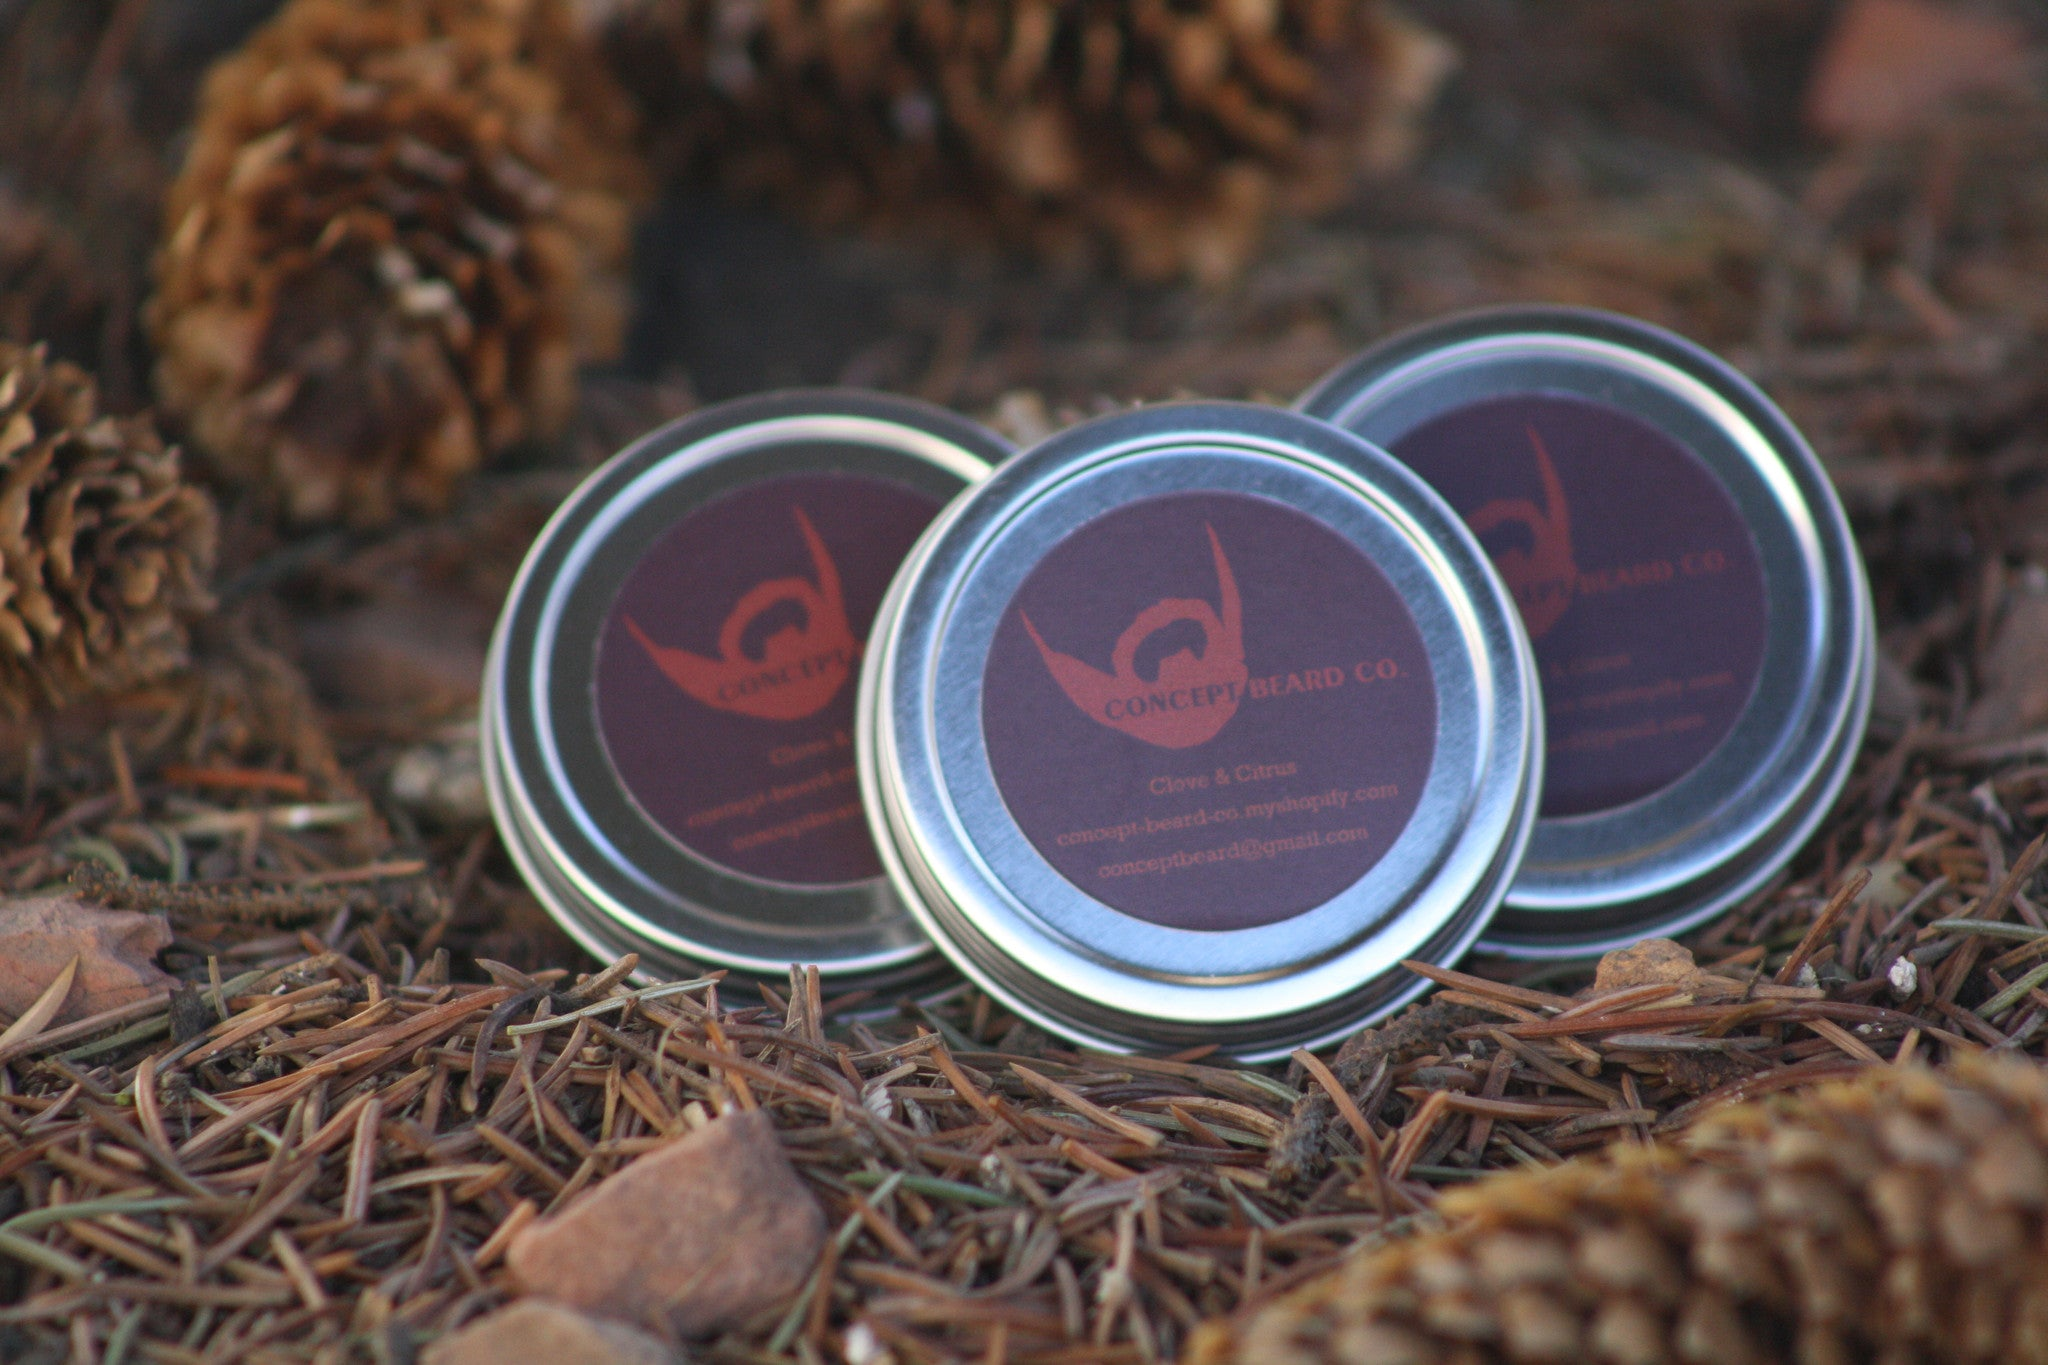 Clove & Citrus Beard Balm 1oz